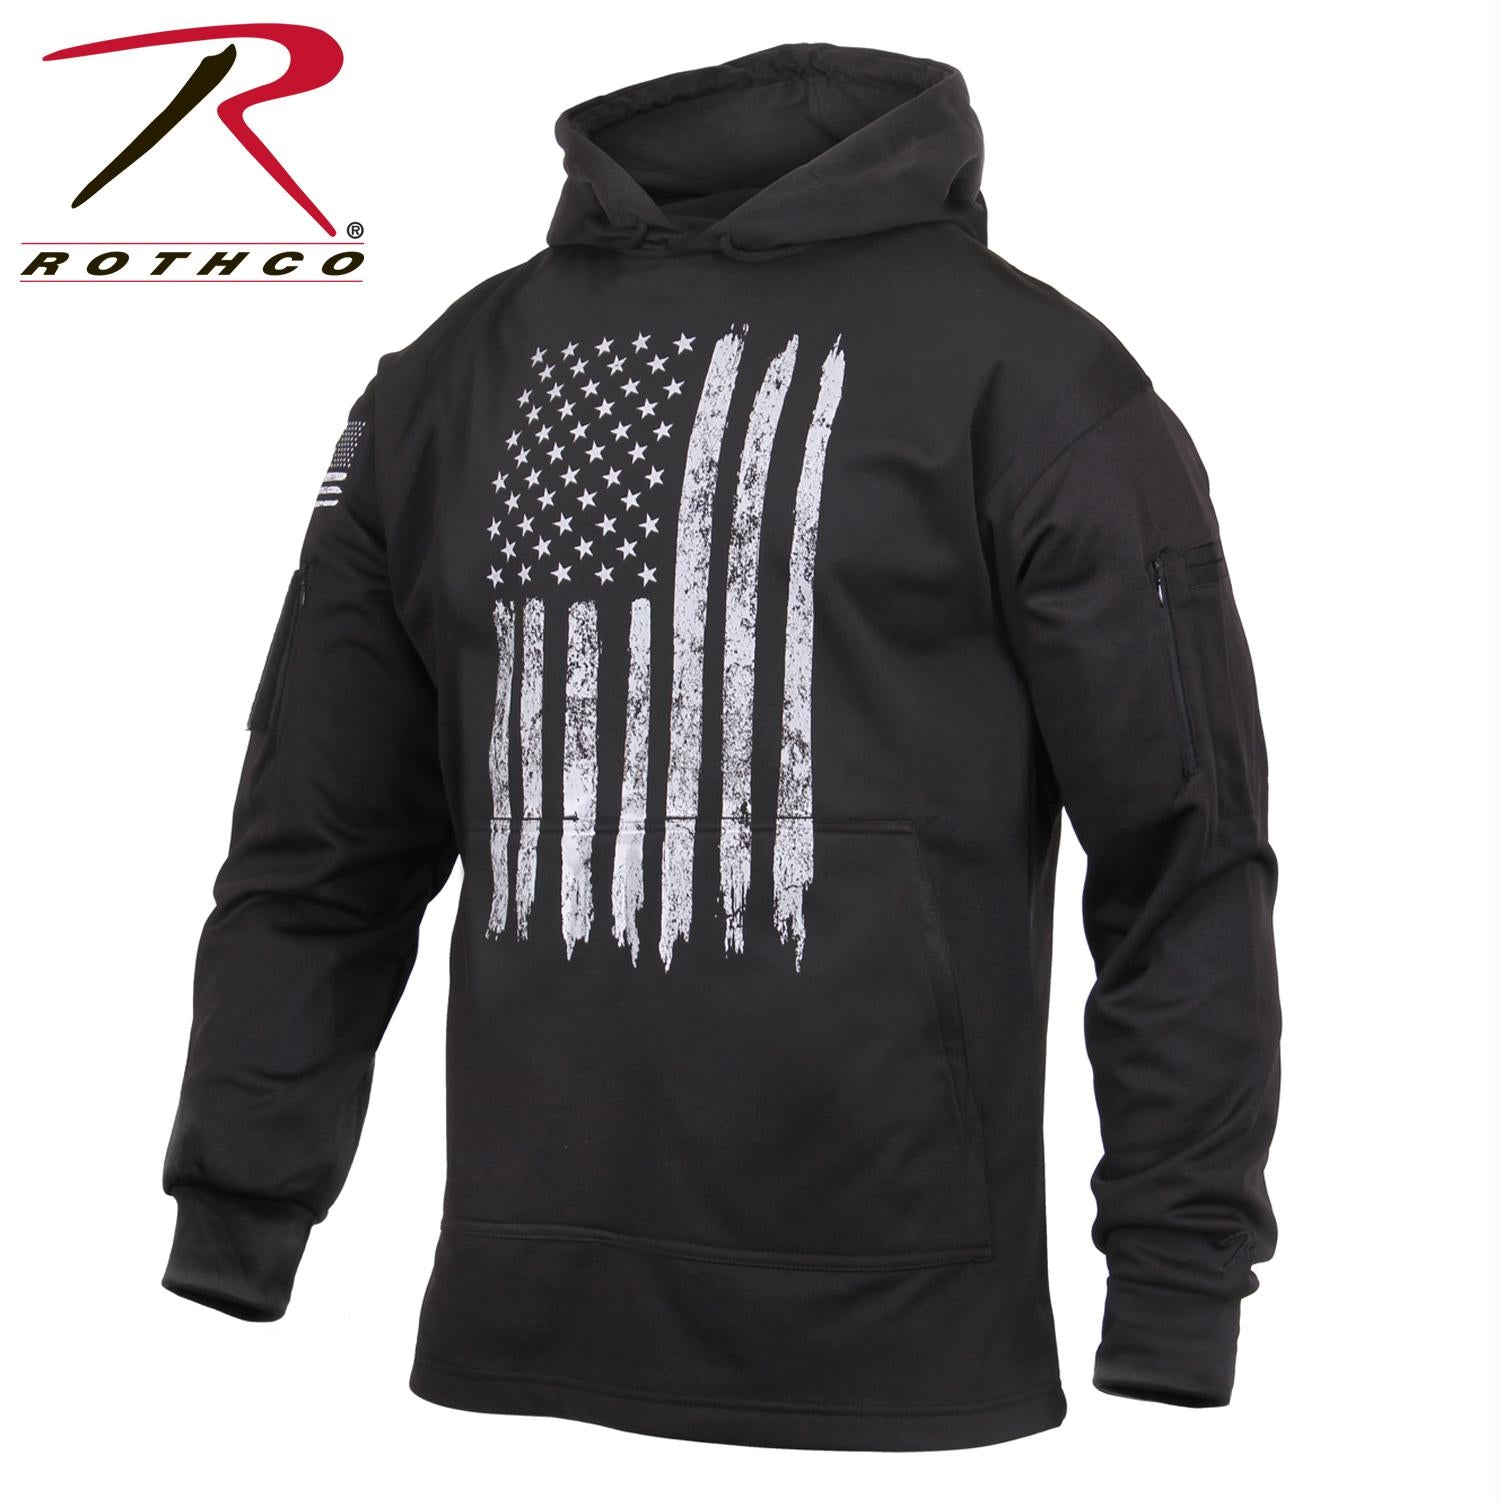 Rothco Distressed US Flag Concealed Carry Hooded Sweatshirt - Black / 2XL